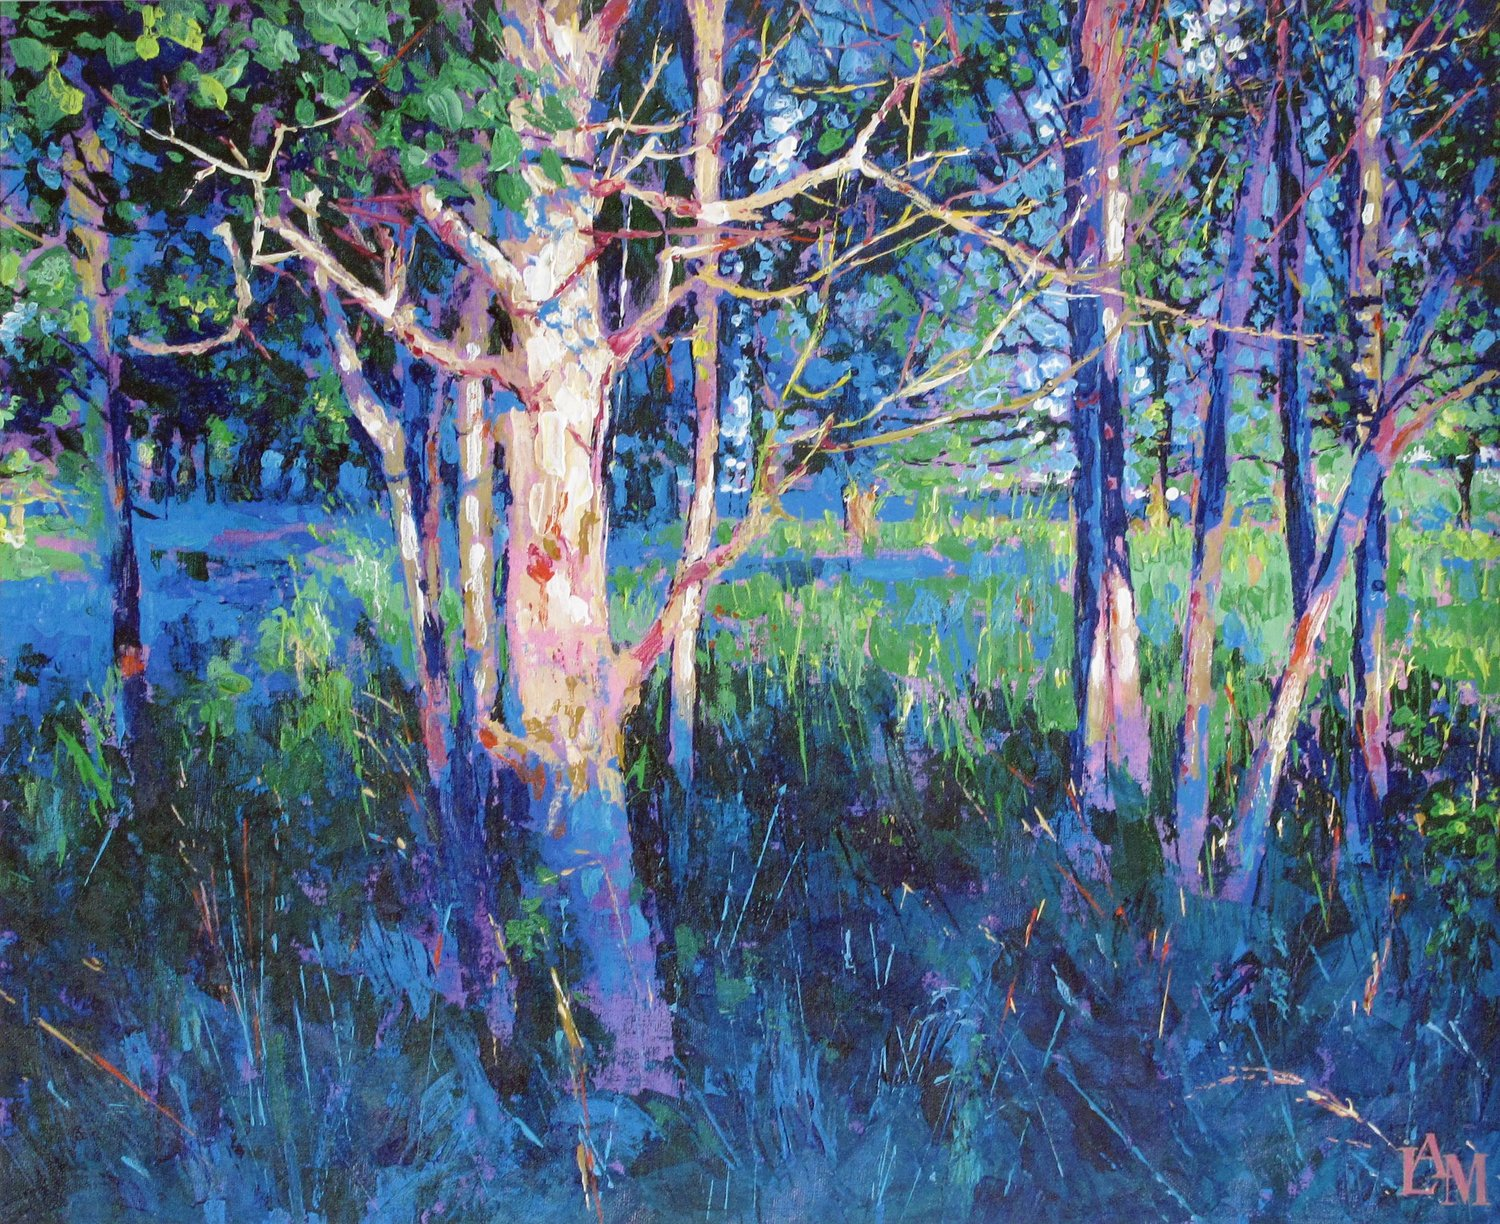 'Harrestrup Evening Blue', Lesley Anne Mackenzie, Acrylic, 56 x 46 cm